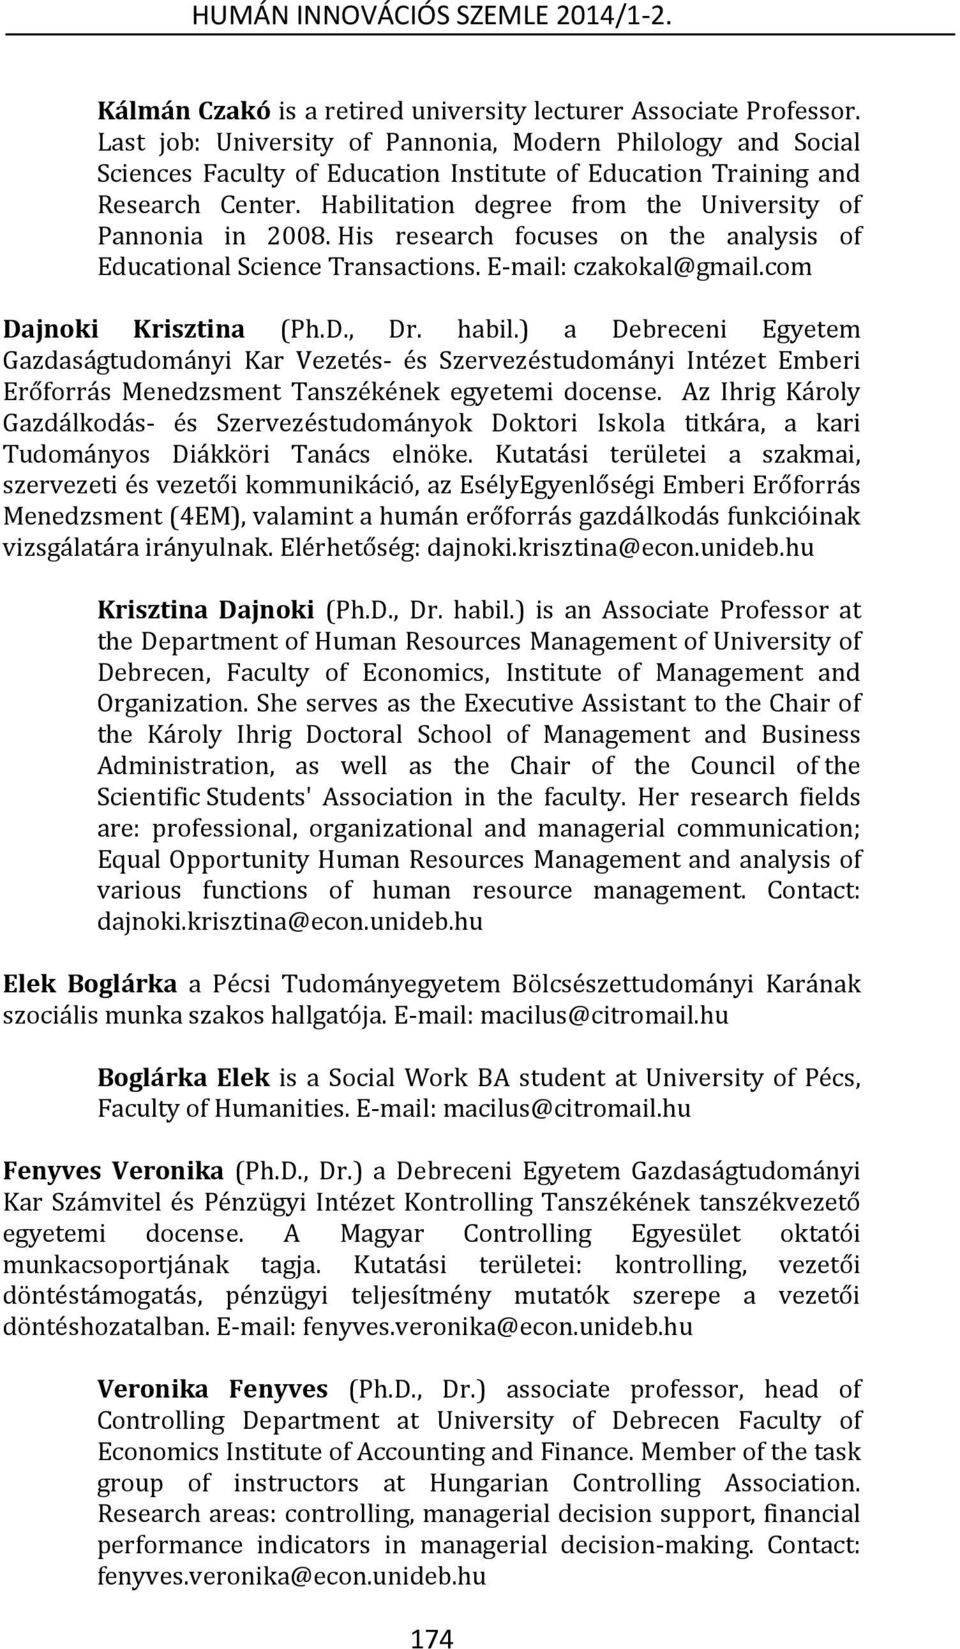 Habilitation degree from the University of Pannonia in 2008. His research focuses on the analysis of Educational Science Transactions. E-mail: czakokal@gmail.com Dajnoki Krisztina (Ph.D., Dr. habil.